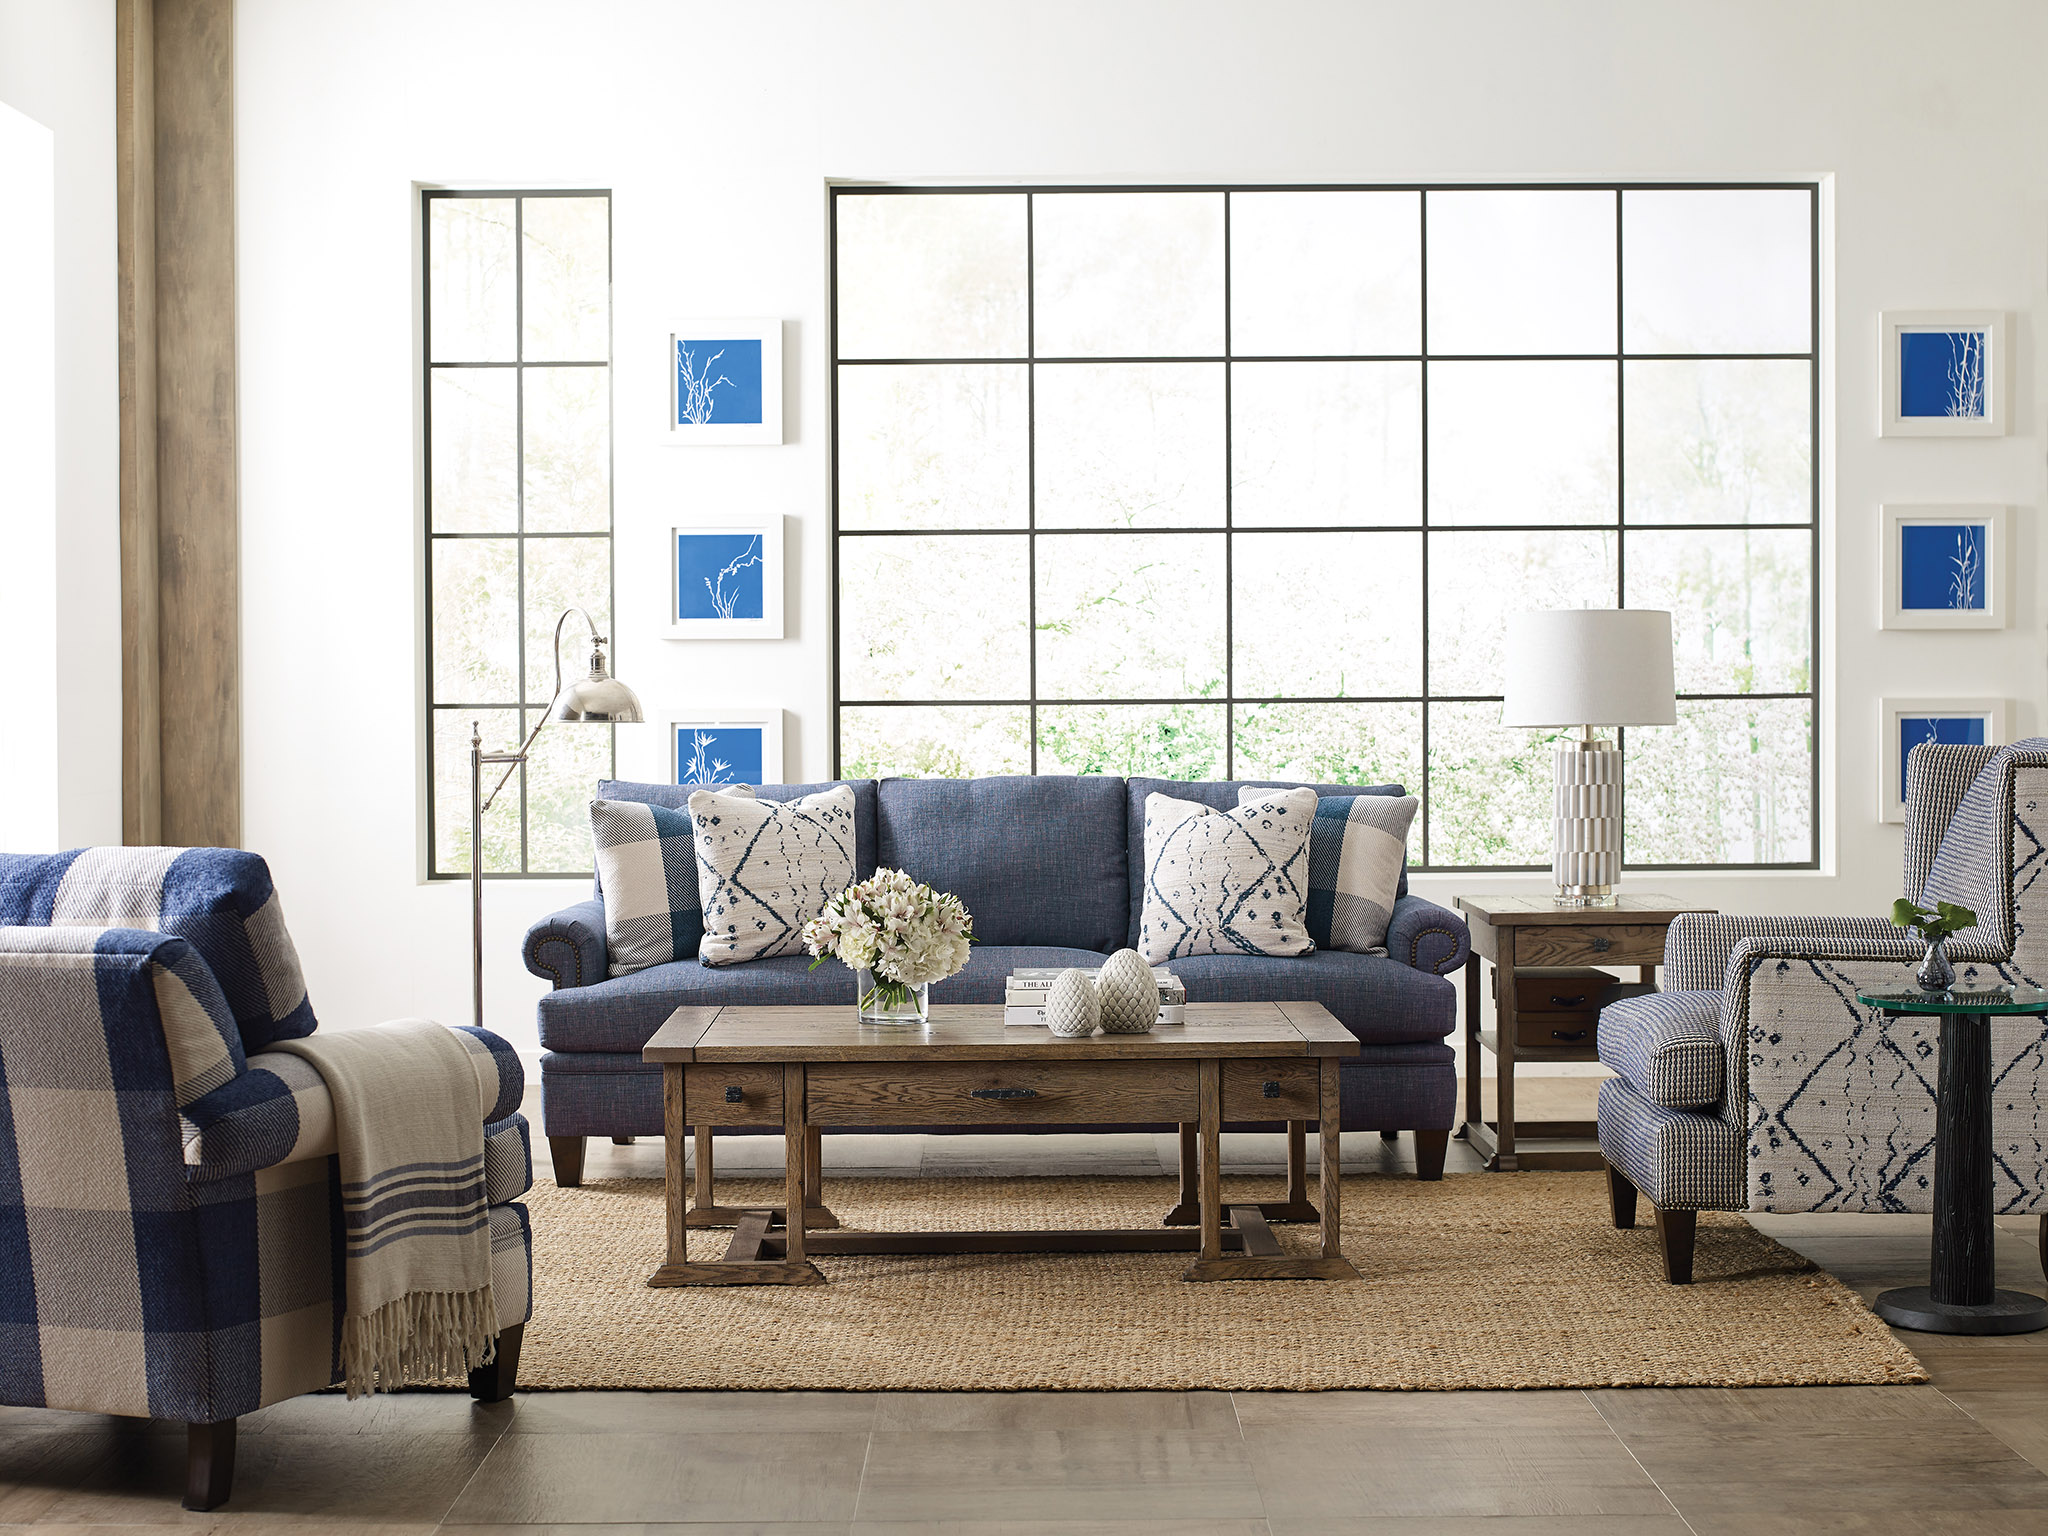 How to Use Accent Chairs | E.F. Brannon Furniture